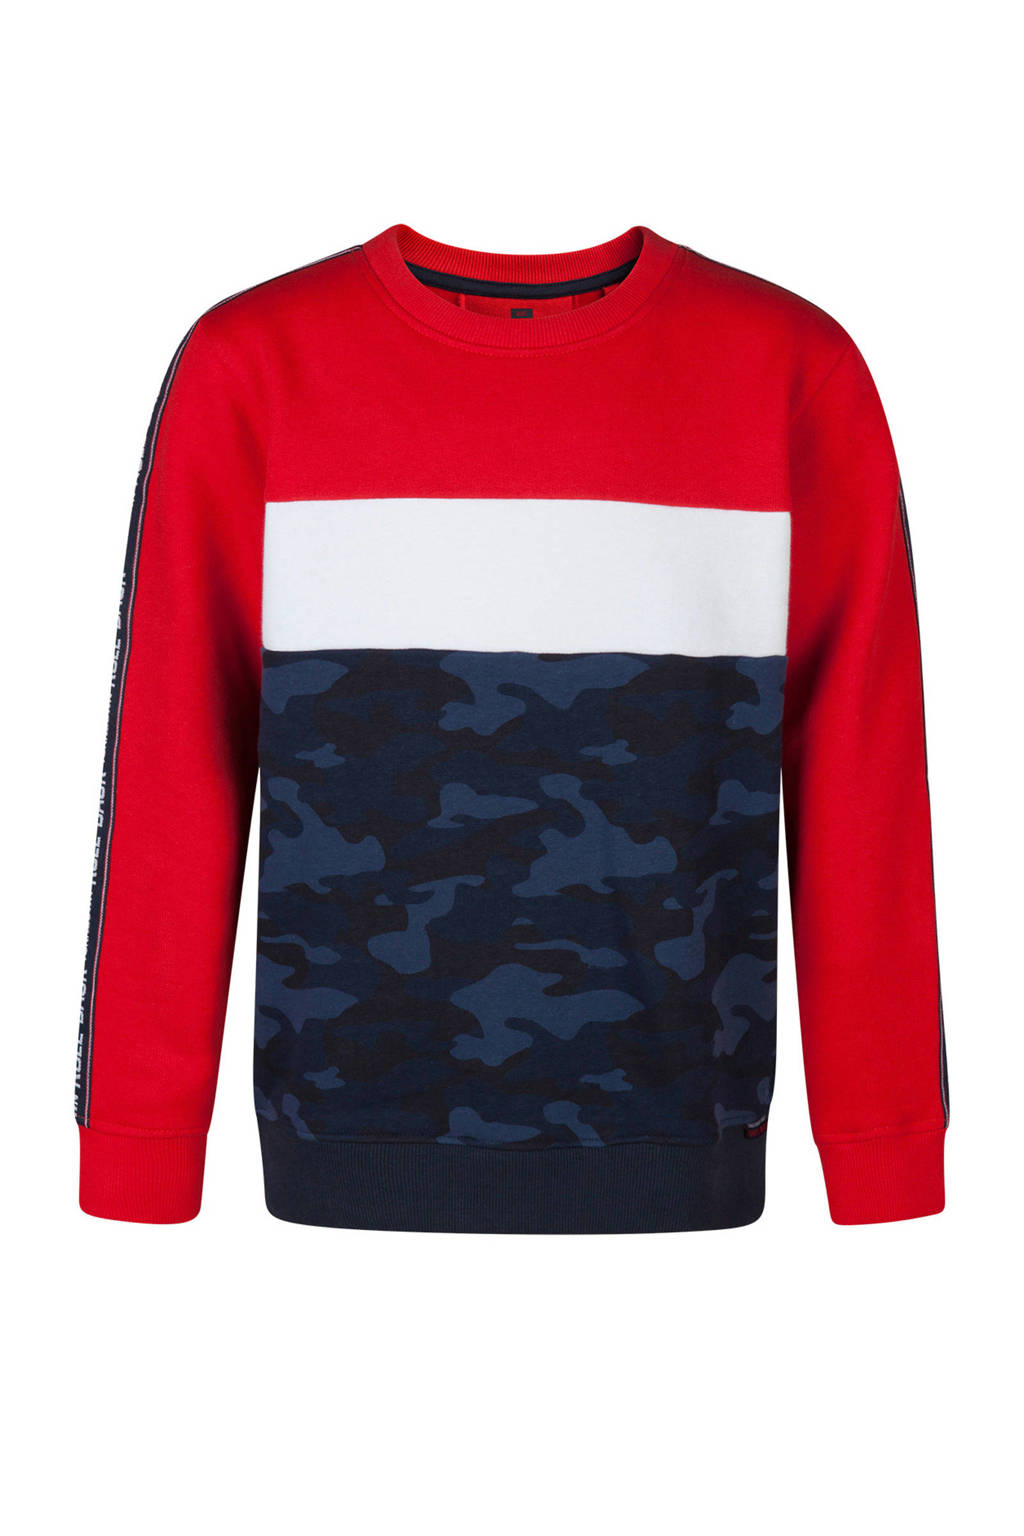 WE Fashion sweater met camouflageprint blauw/rood, Donkerblauw/rood/wit